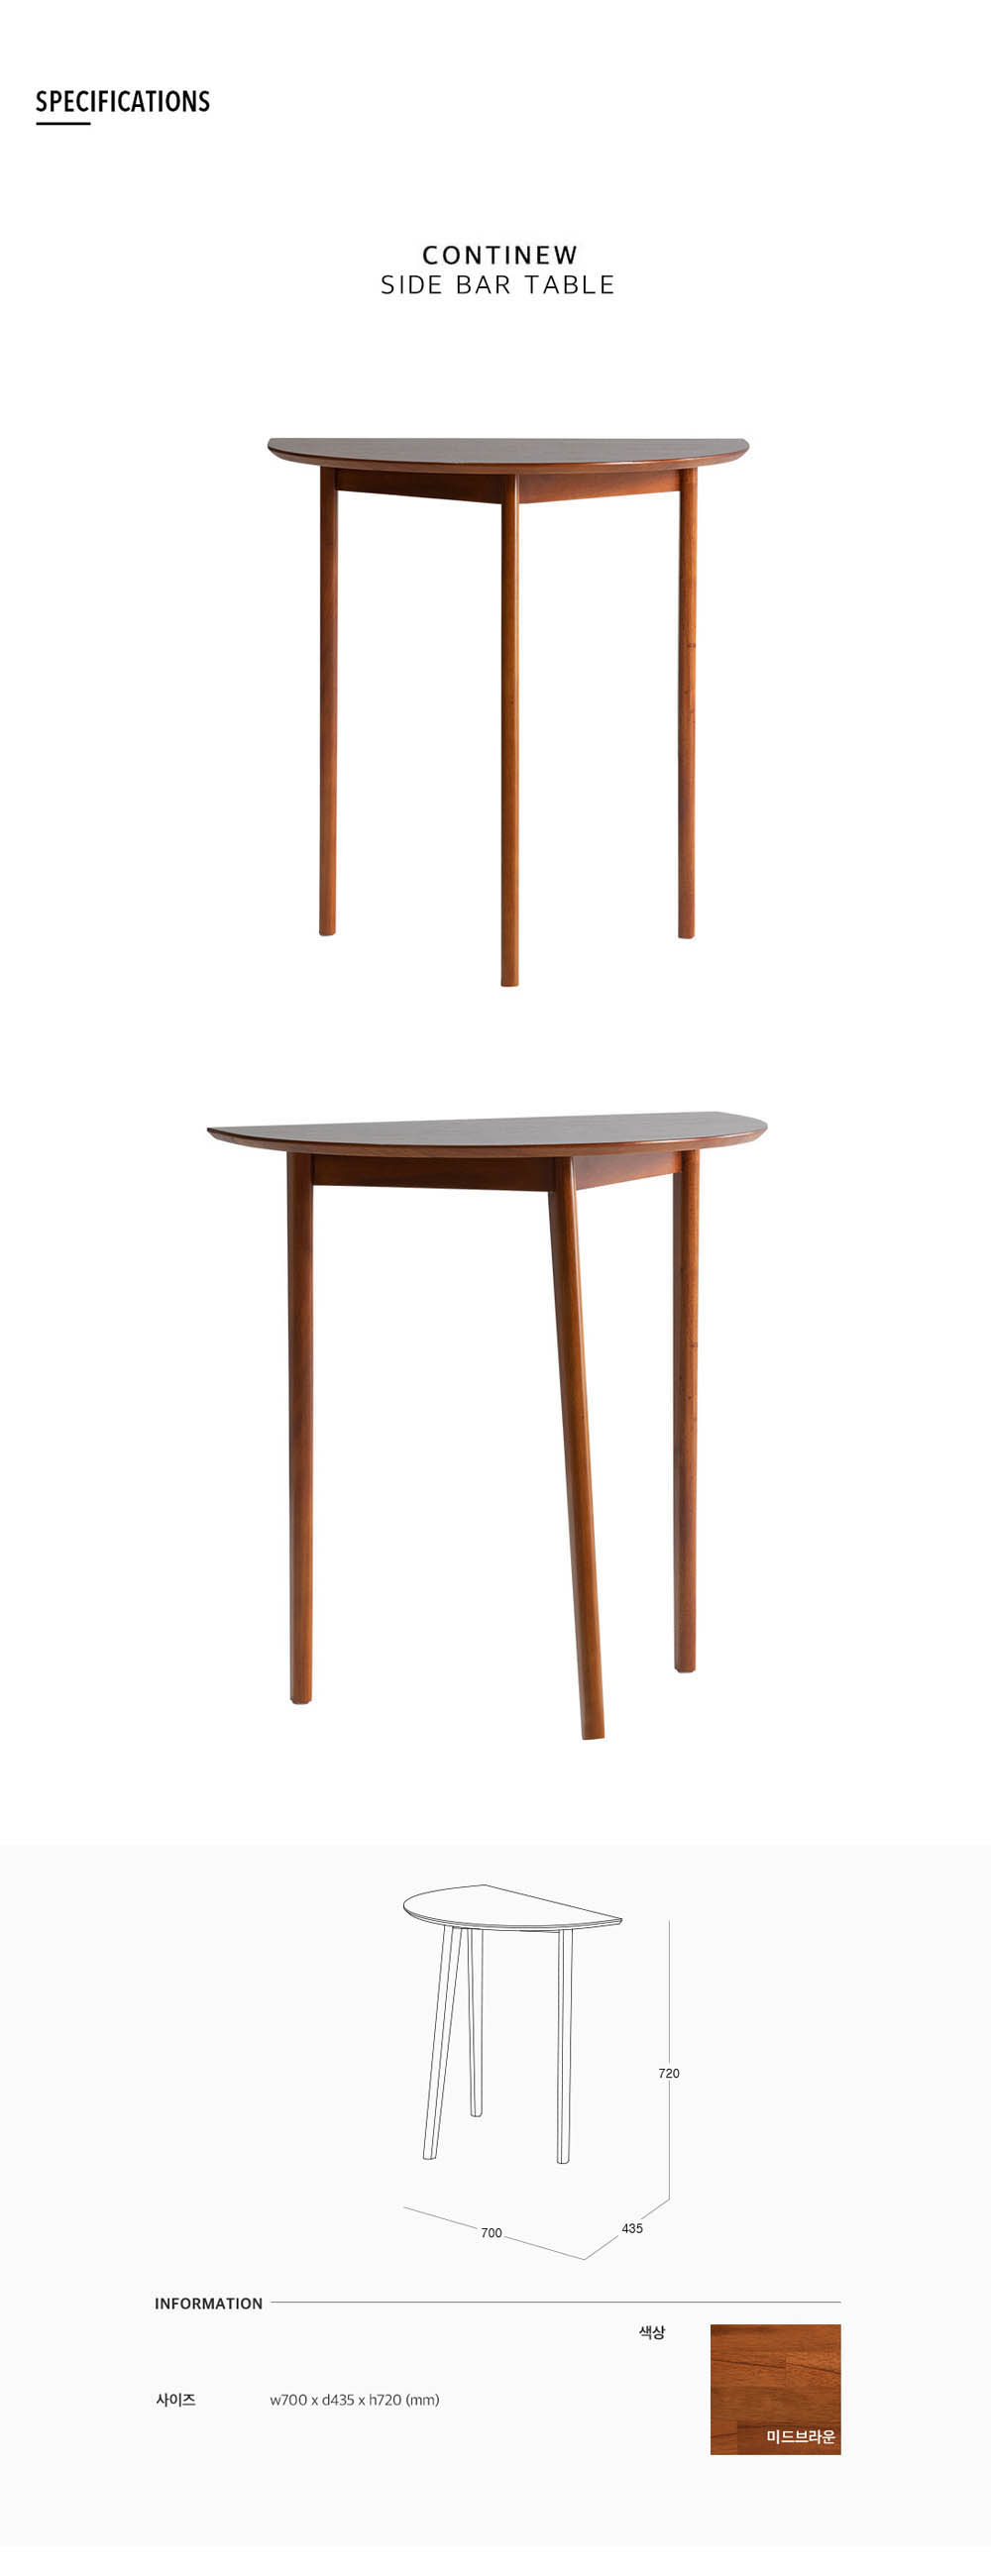 Continew_Antique_Lay_On_Side_Table_dimensions_specs_by_born_in_colour